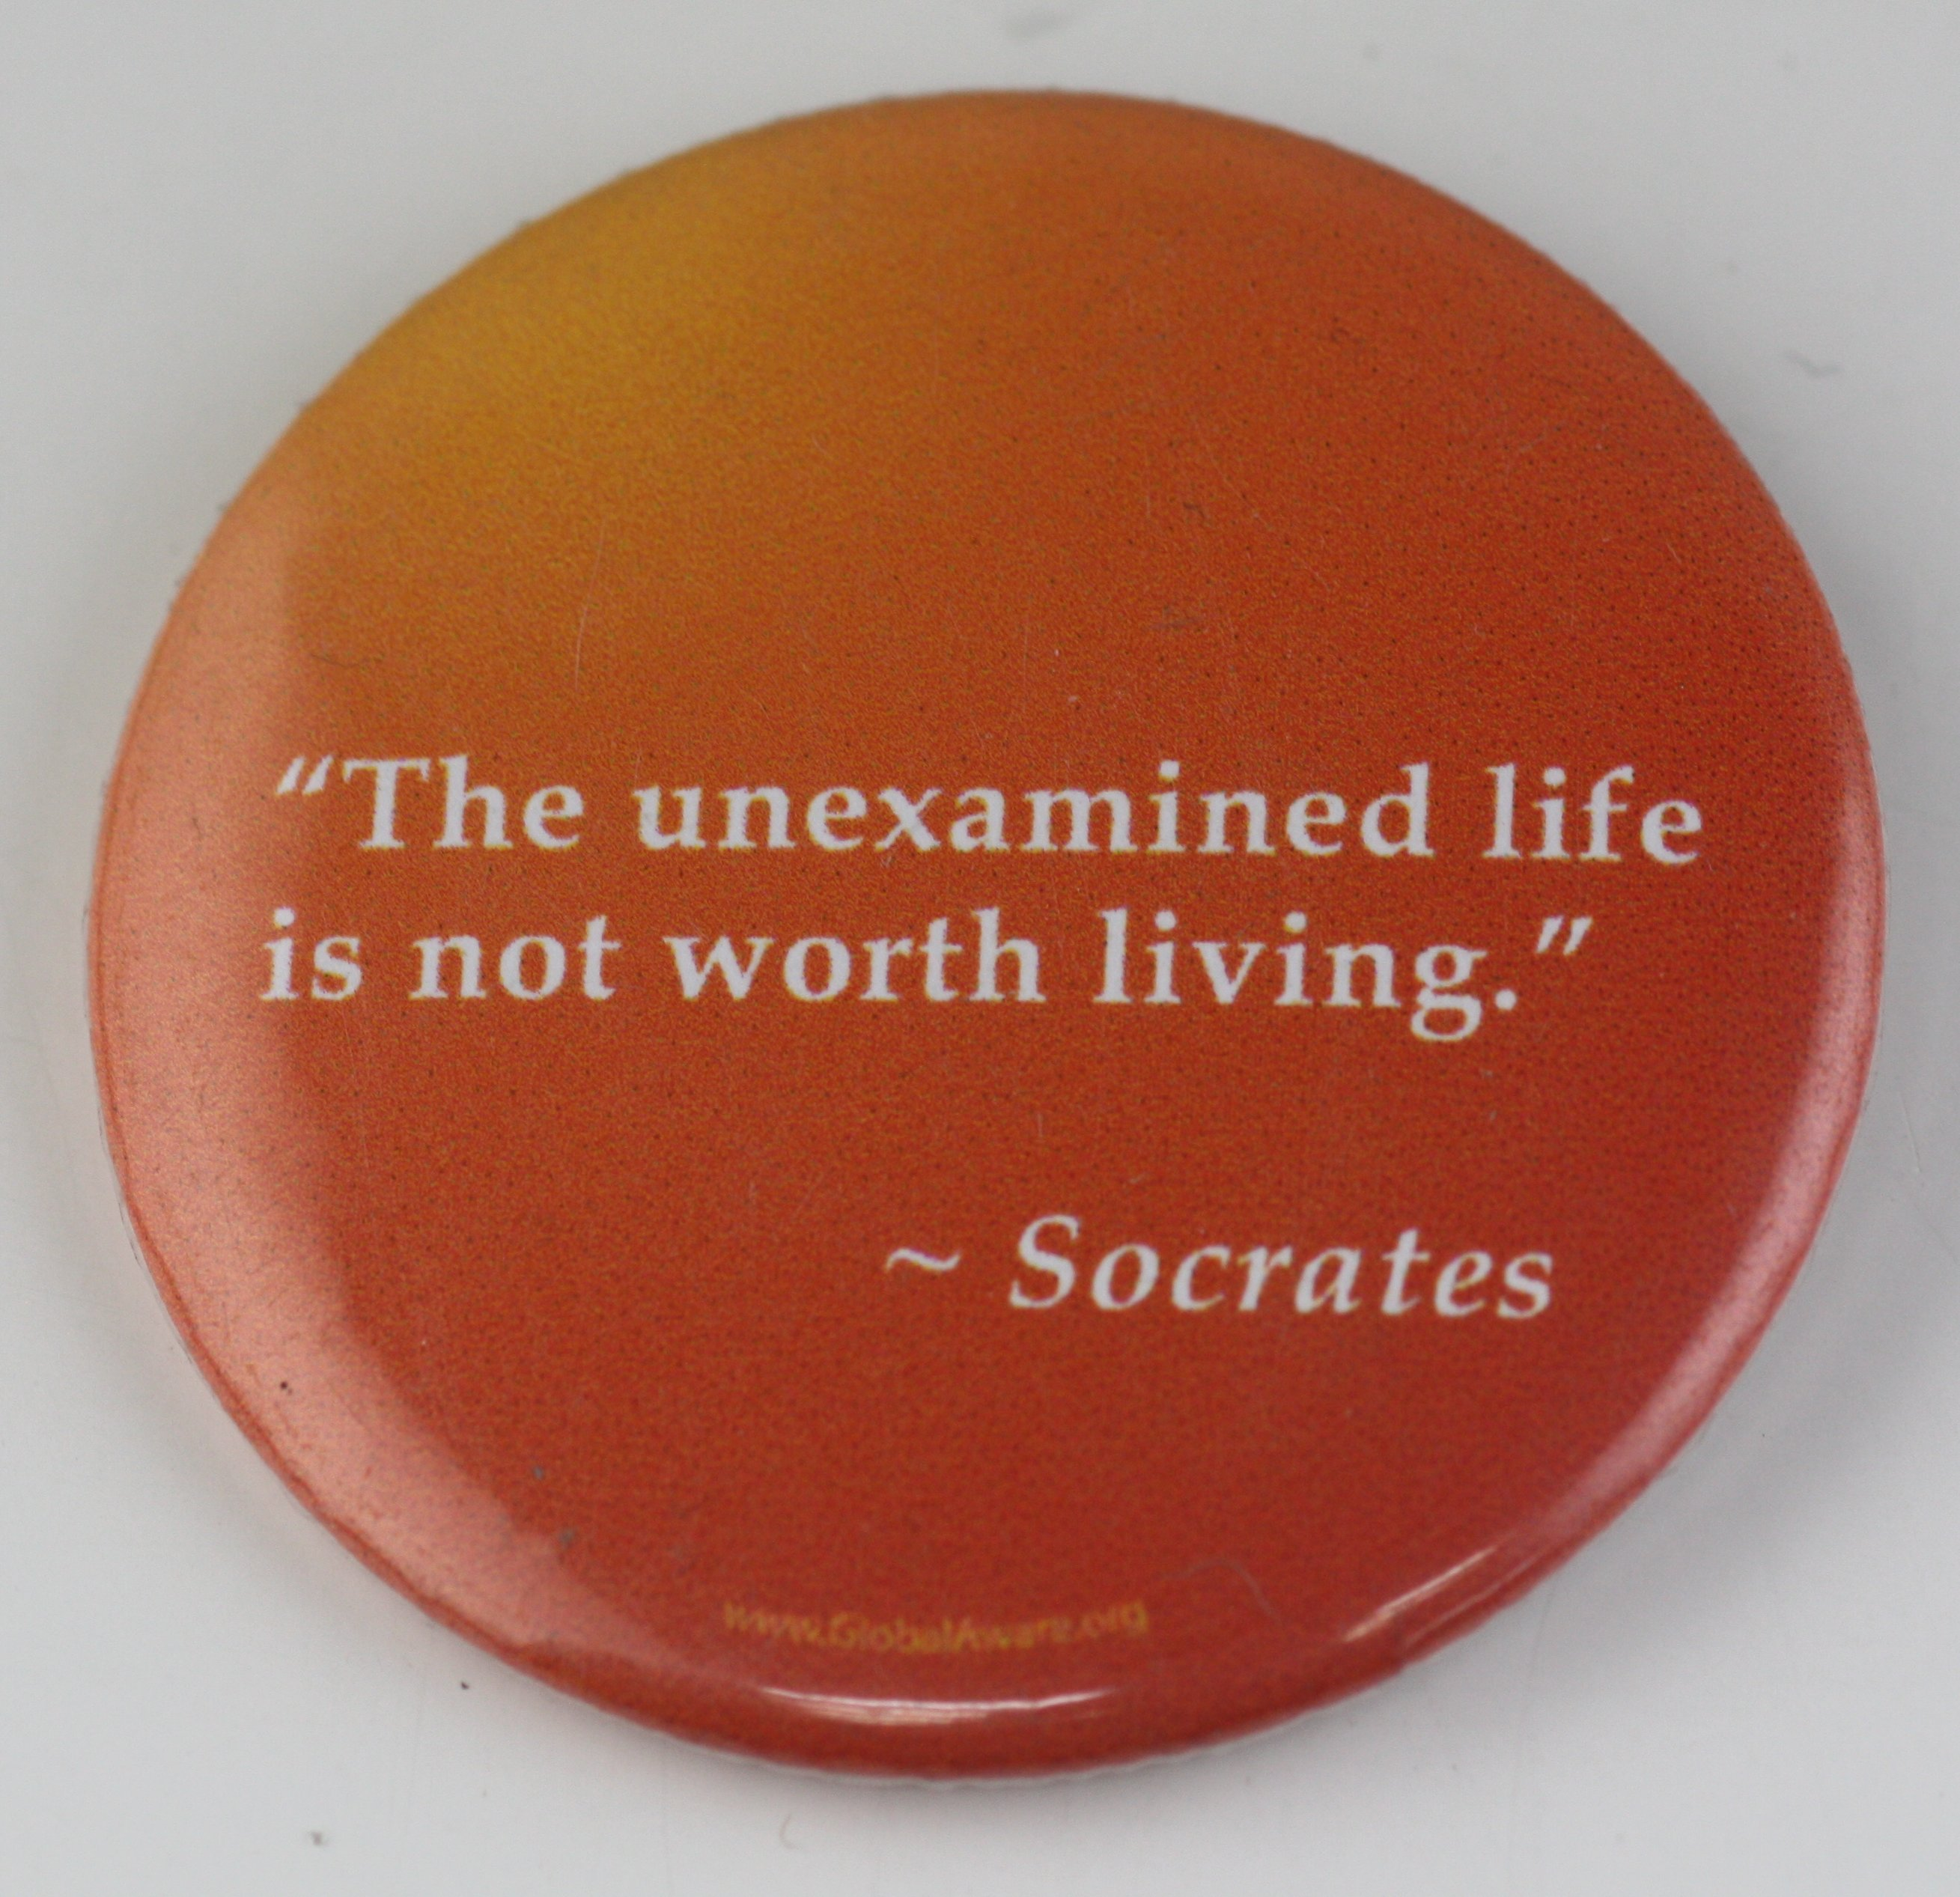 essay on socrates the unexamined life Free essay: socrates was considered by many to be the wisest man in ancient  greece while he was eventually condemned for his wisdom, his spoken words.